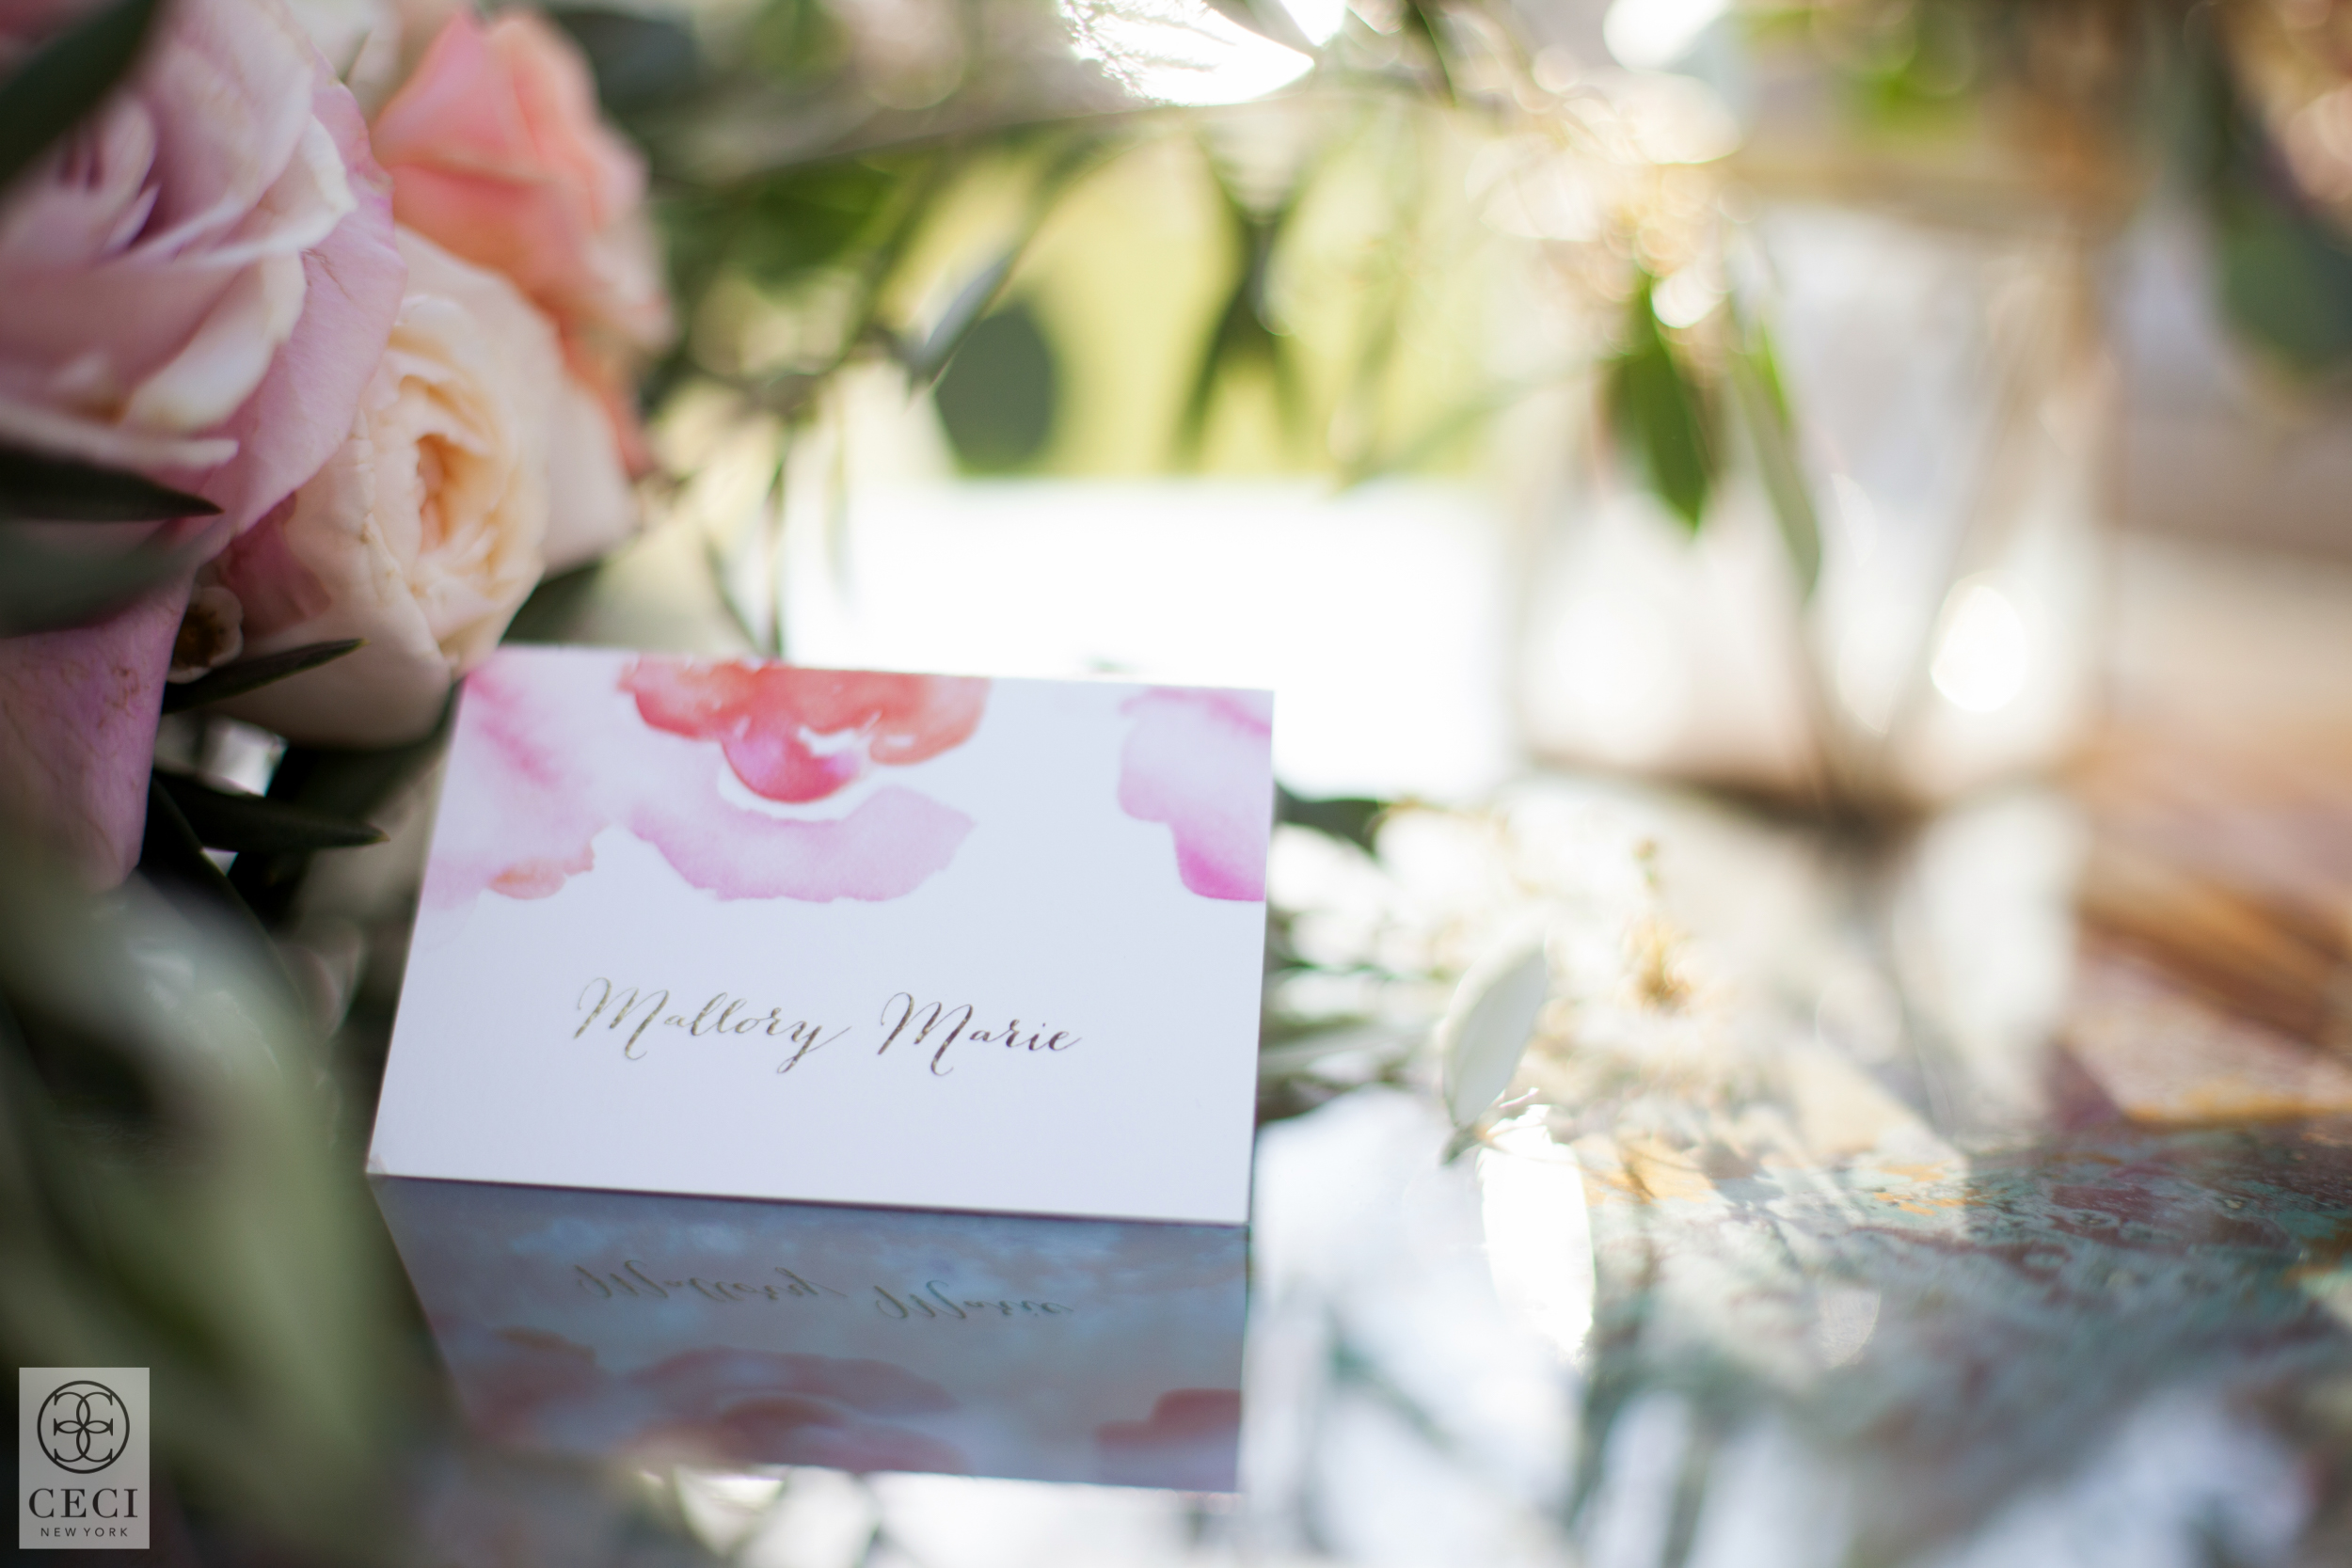 Ceci_New_York_Ceci_Style_Ceci_Johnson_Luxury_Lifestyle_Wedding_Floral_Sara_Kauss_Lucky_Sun_Ranch_Watercolor_Hand_Painted_Inspiration_Design_Custom_Couture_Personalized_Invitations_-2.jpg